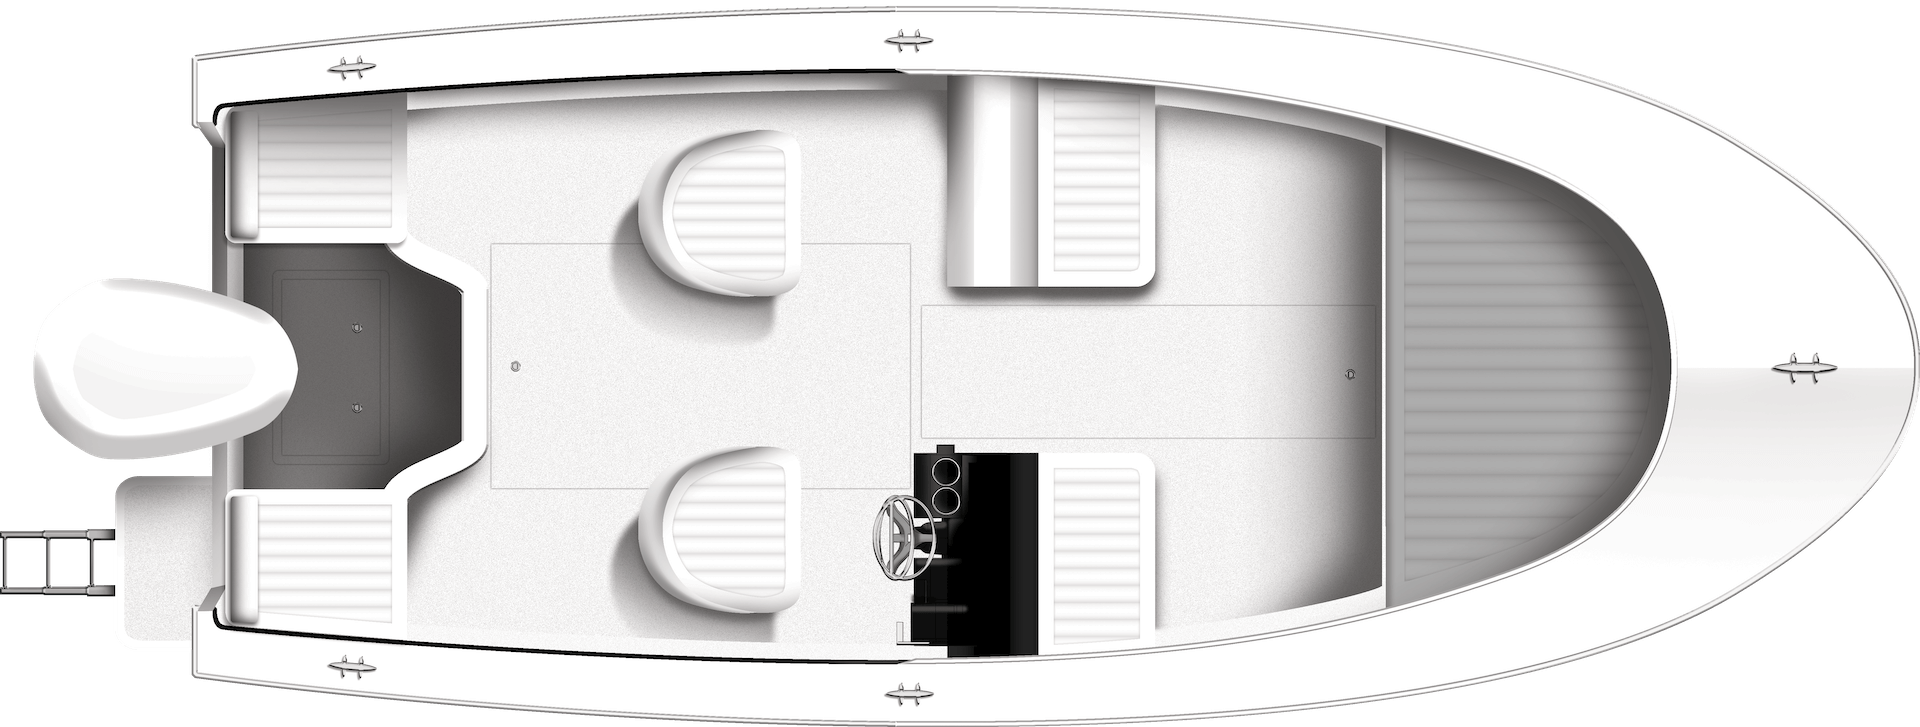 170DC Dual Console Overhead Rendering